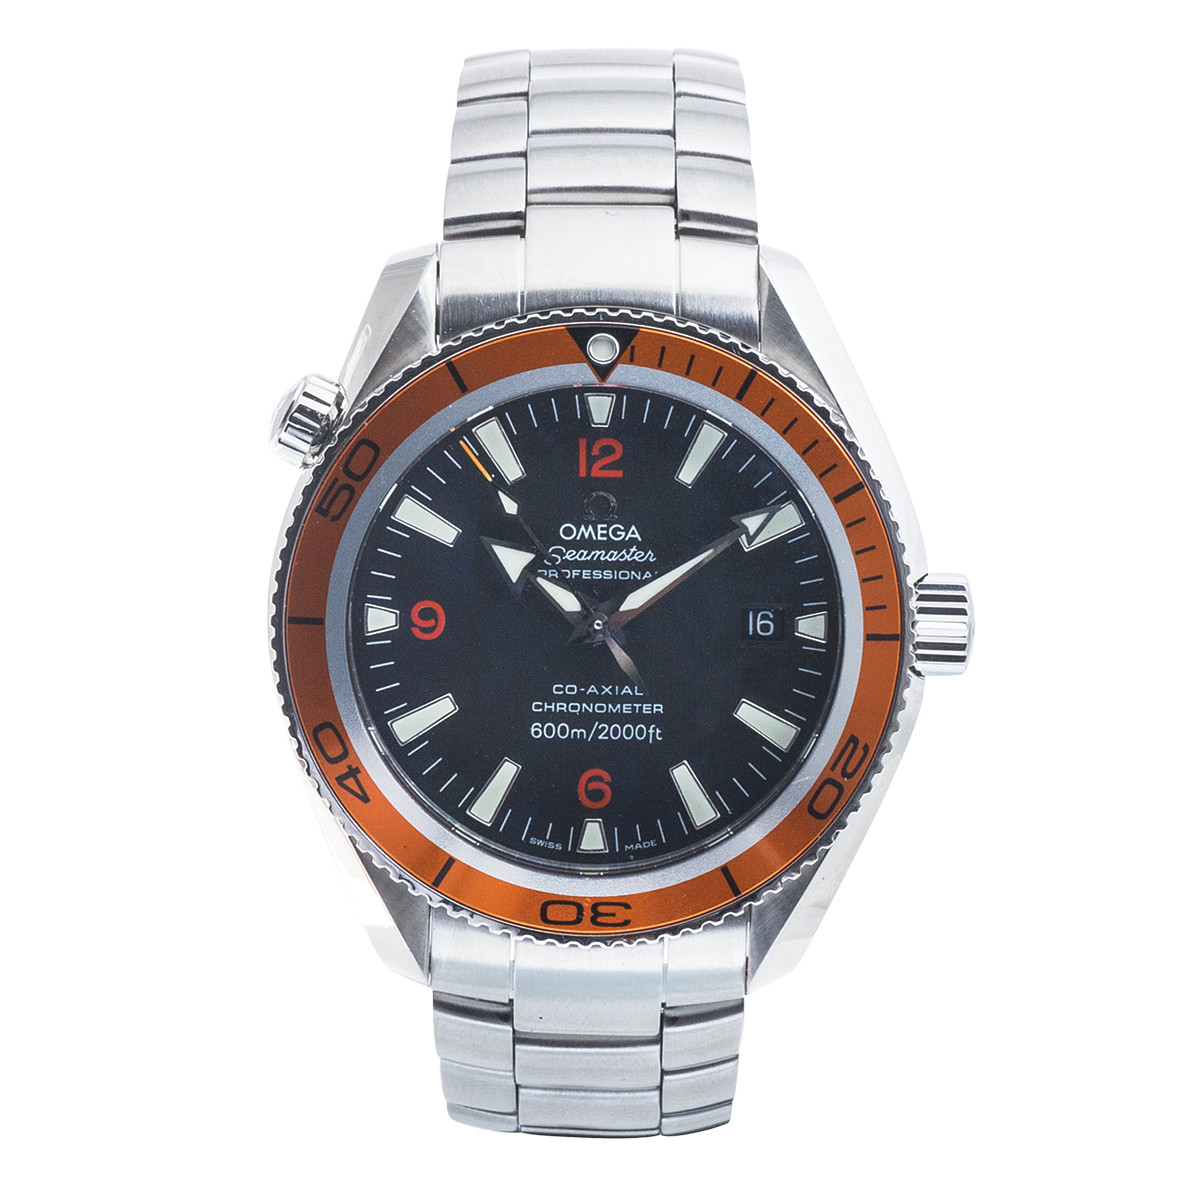 Preowned Omega Seamaster Planet Ocean 600 M